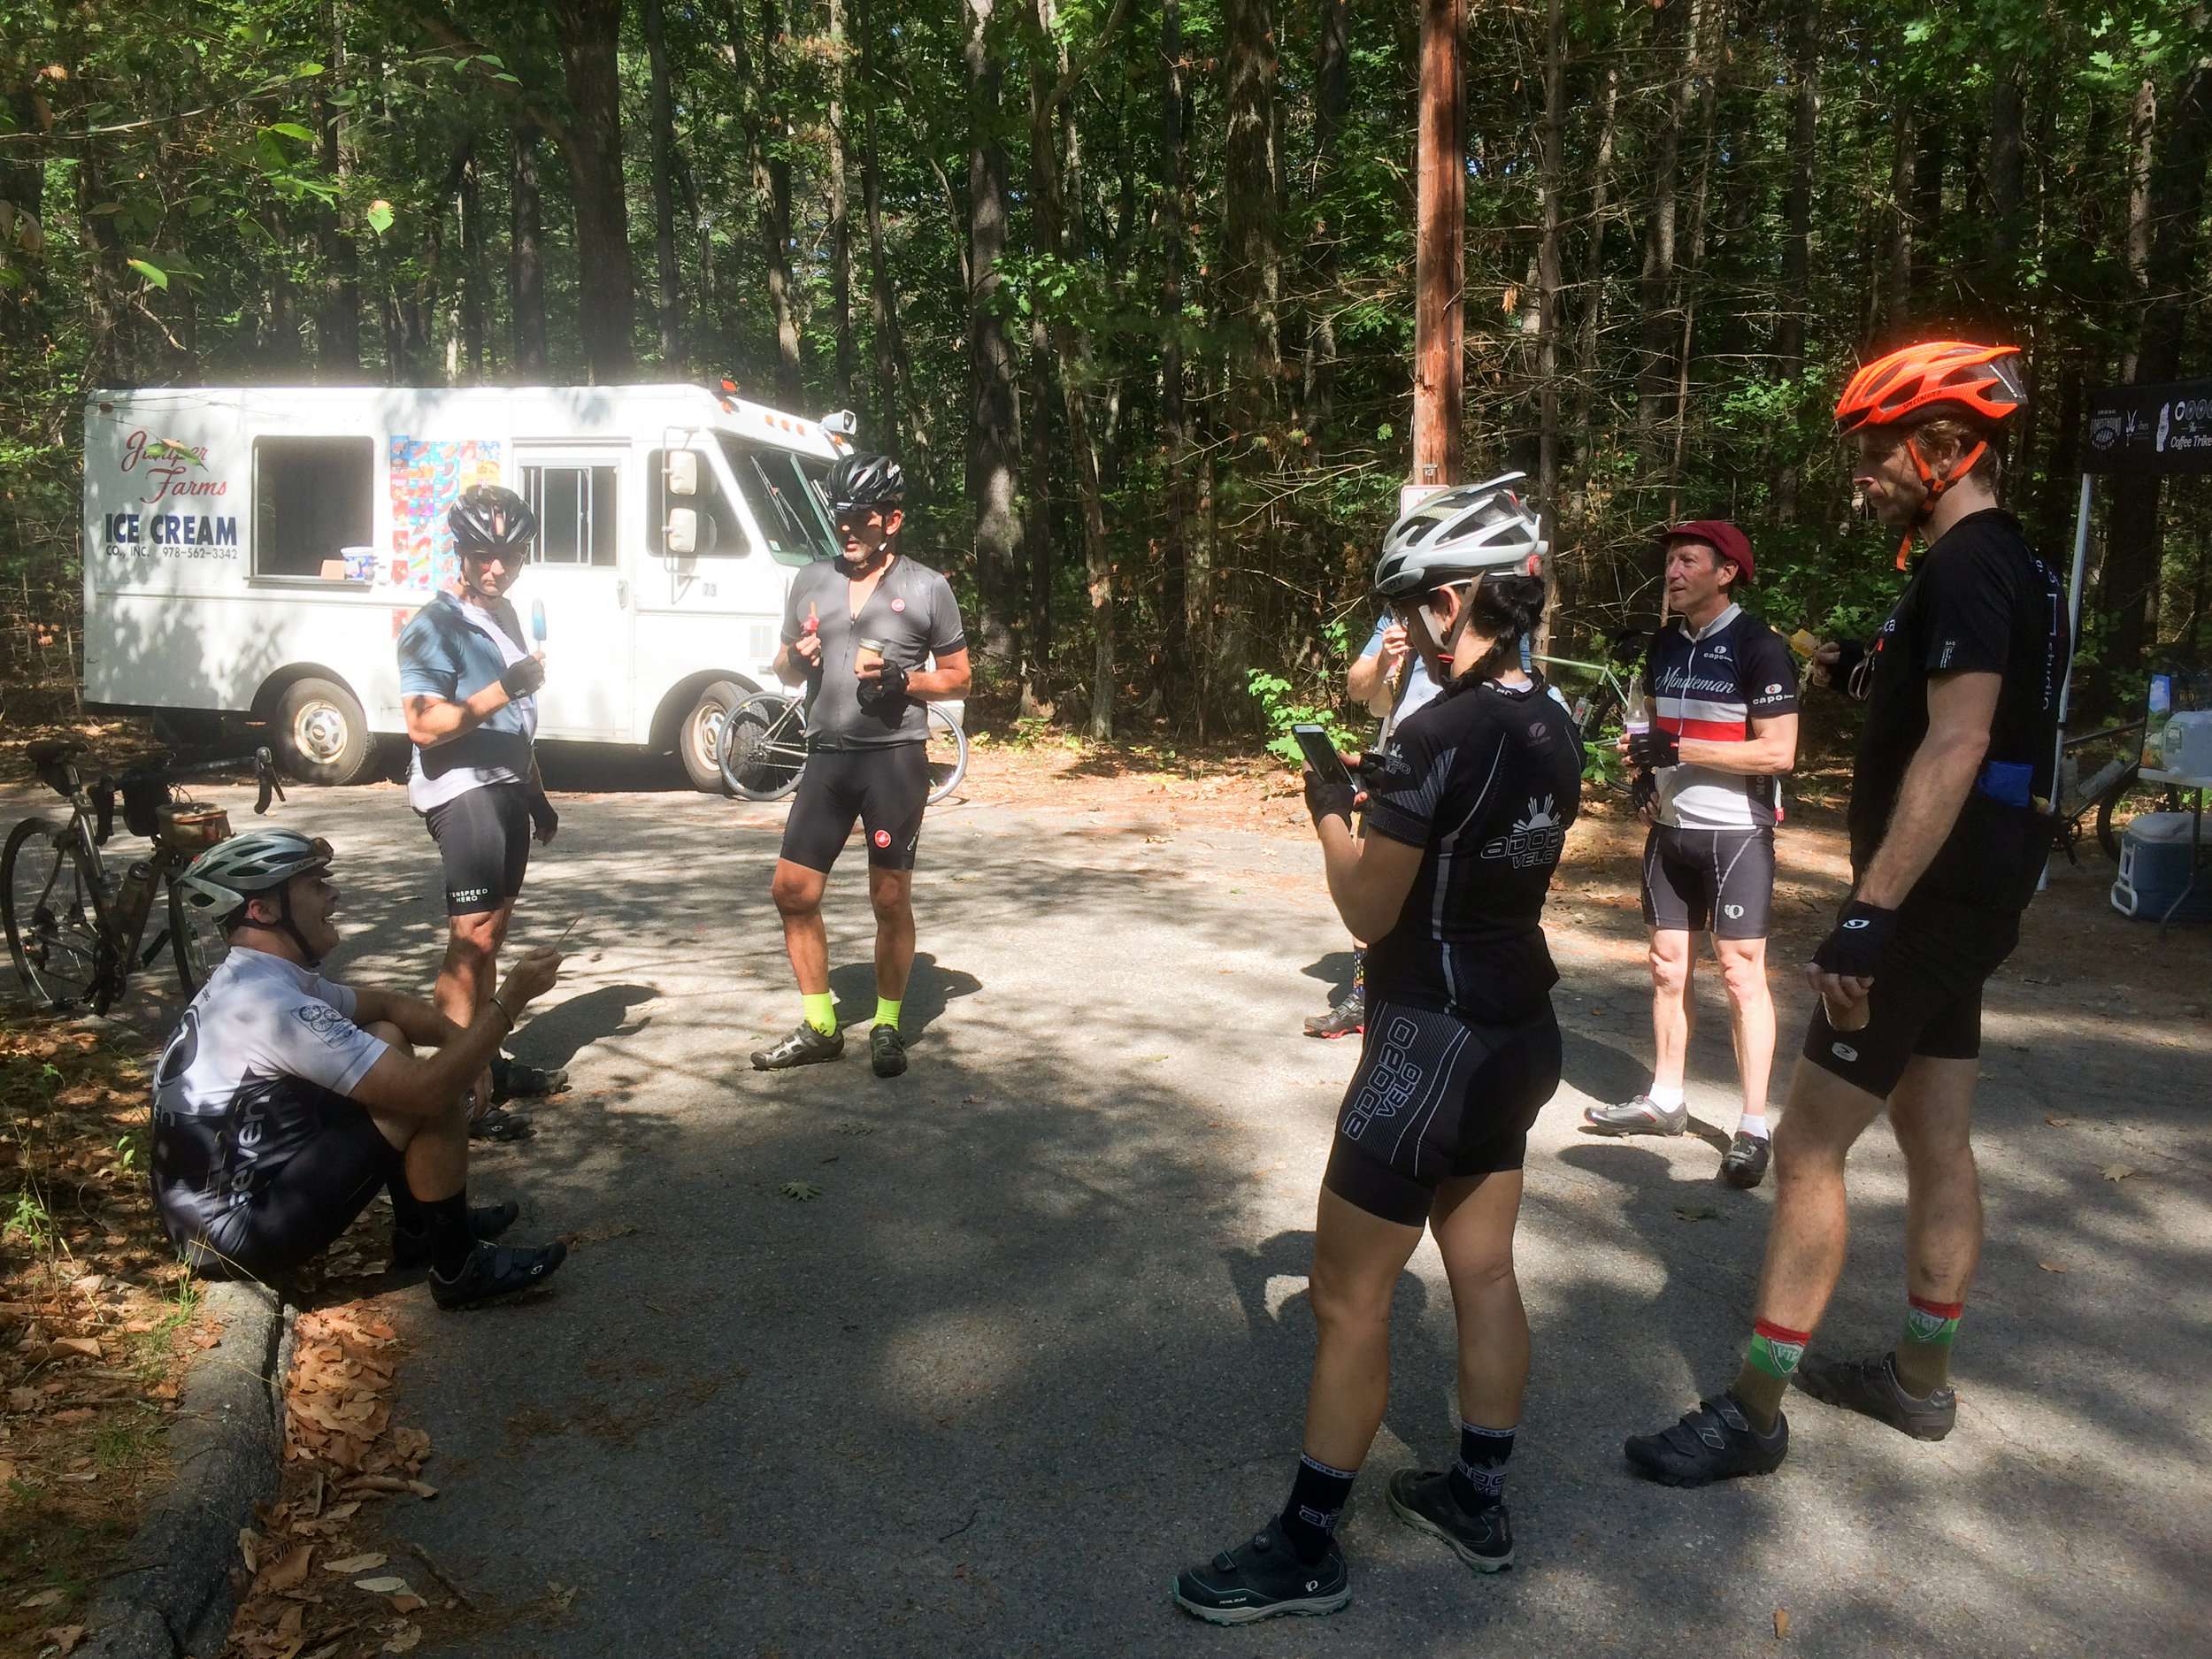 Riders enjoying ice cream,popsicles, and iced mochas